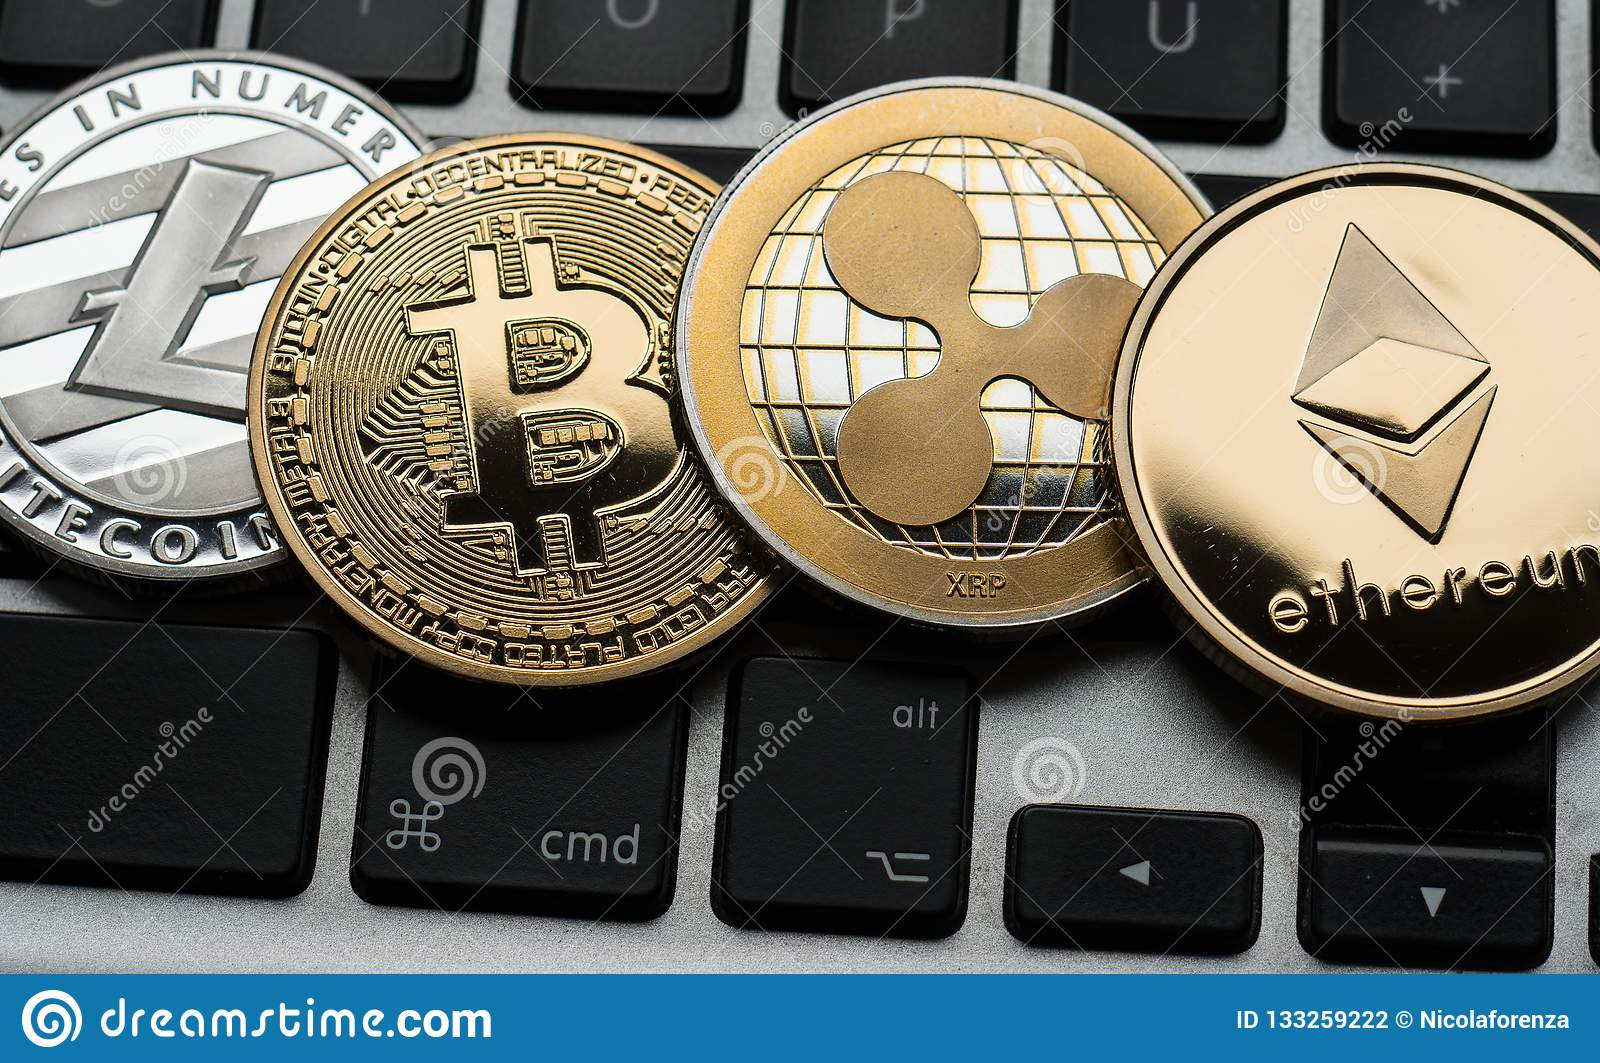 should i invest in bitcoin litecoin or ethereum